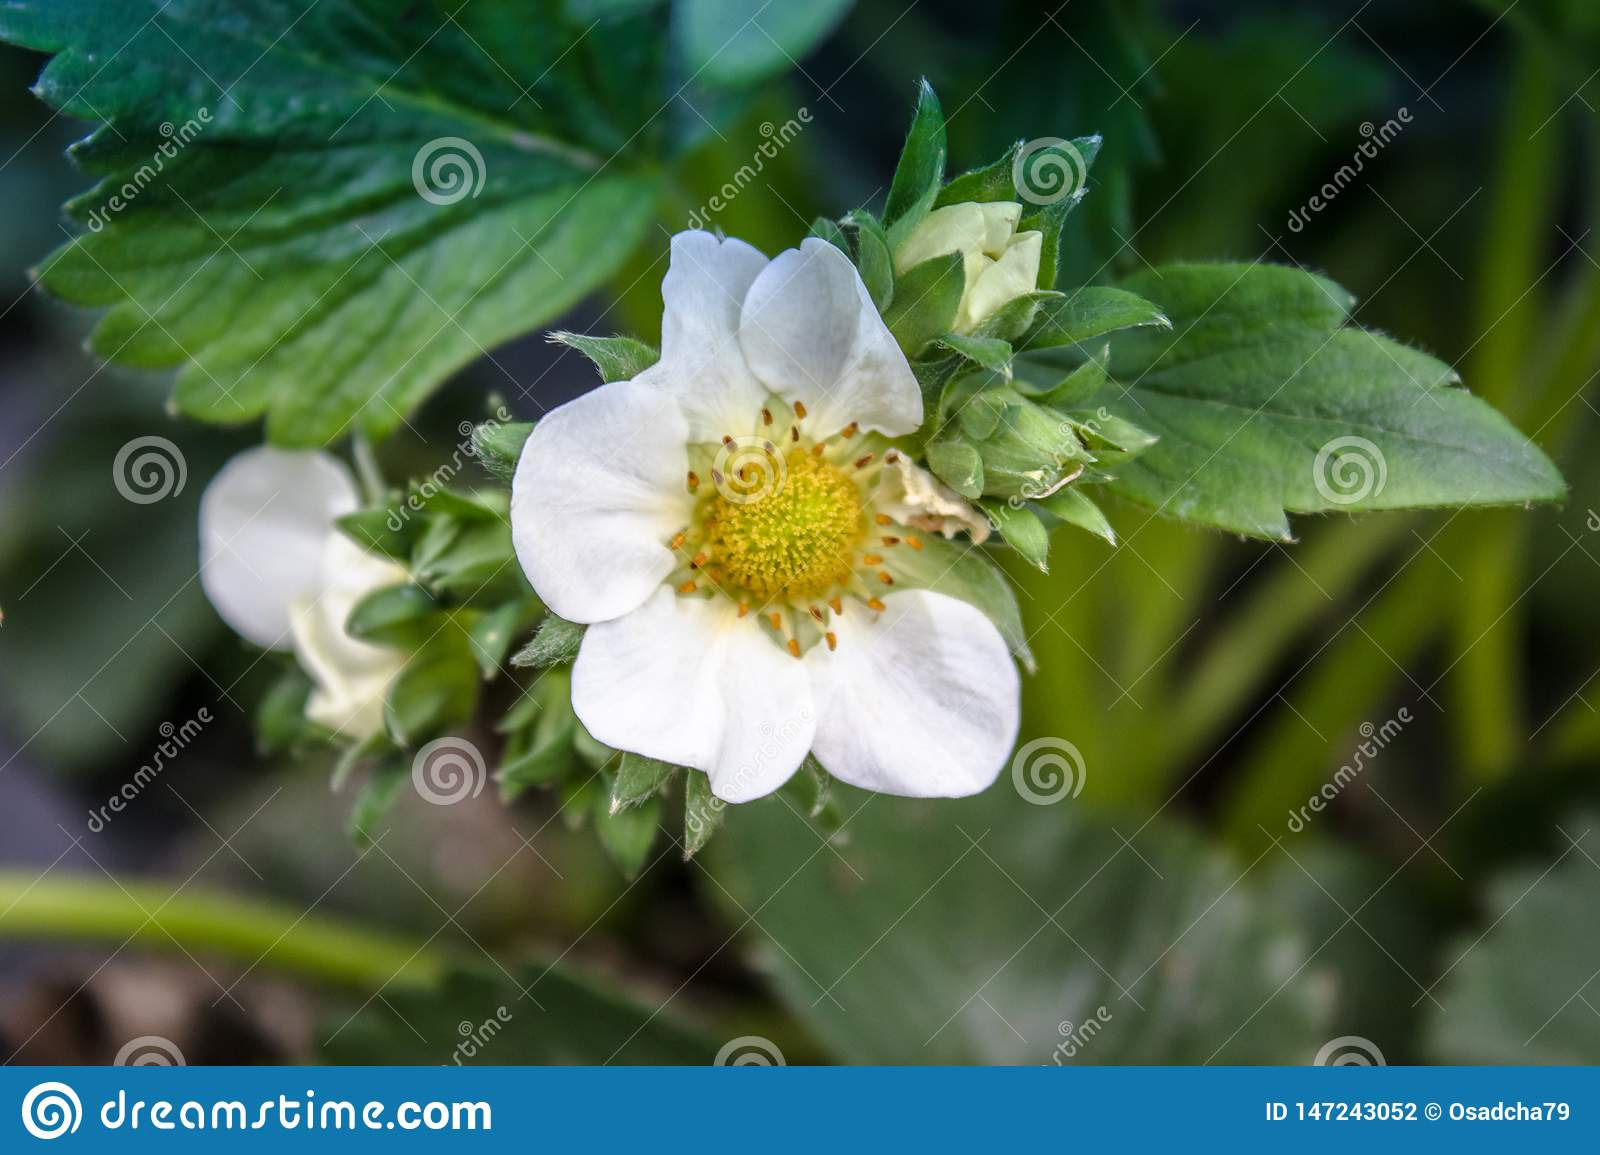 Flowers strawberries with green leaves